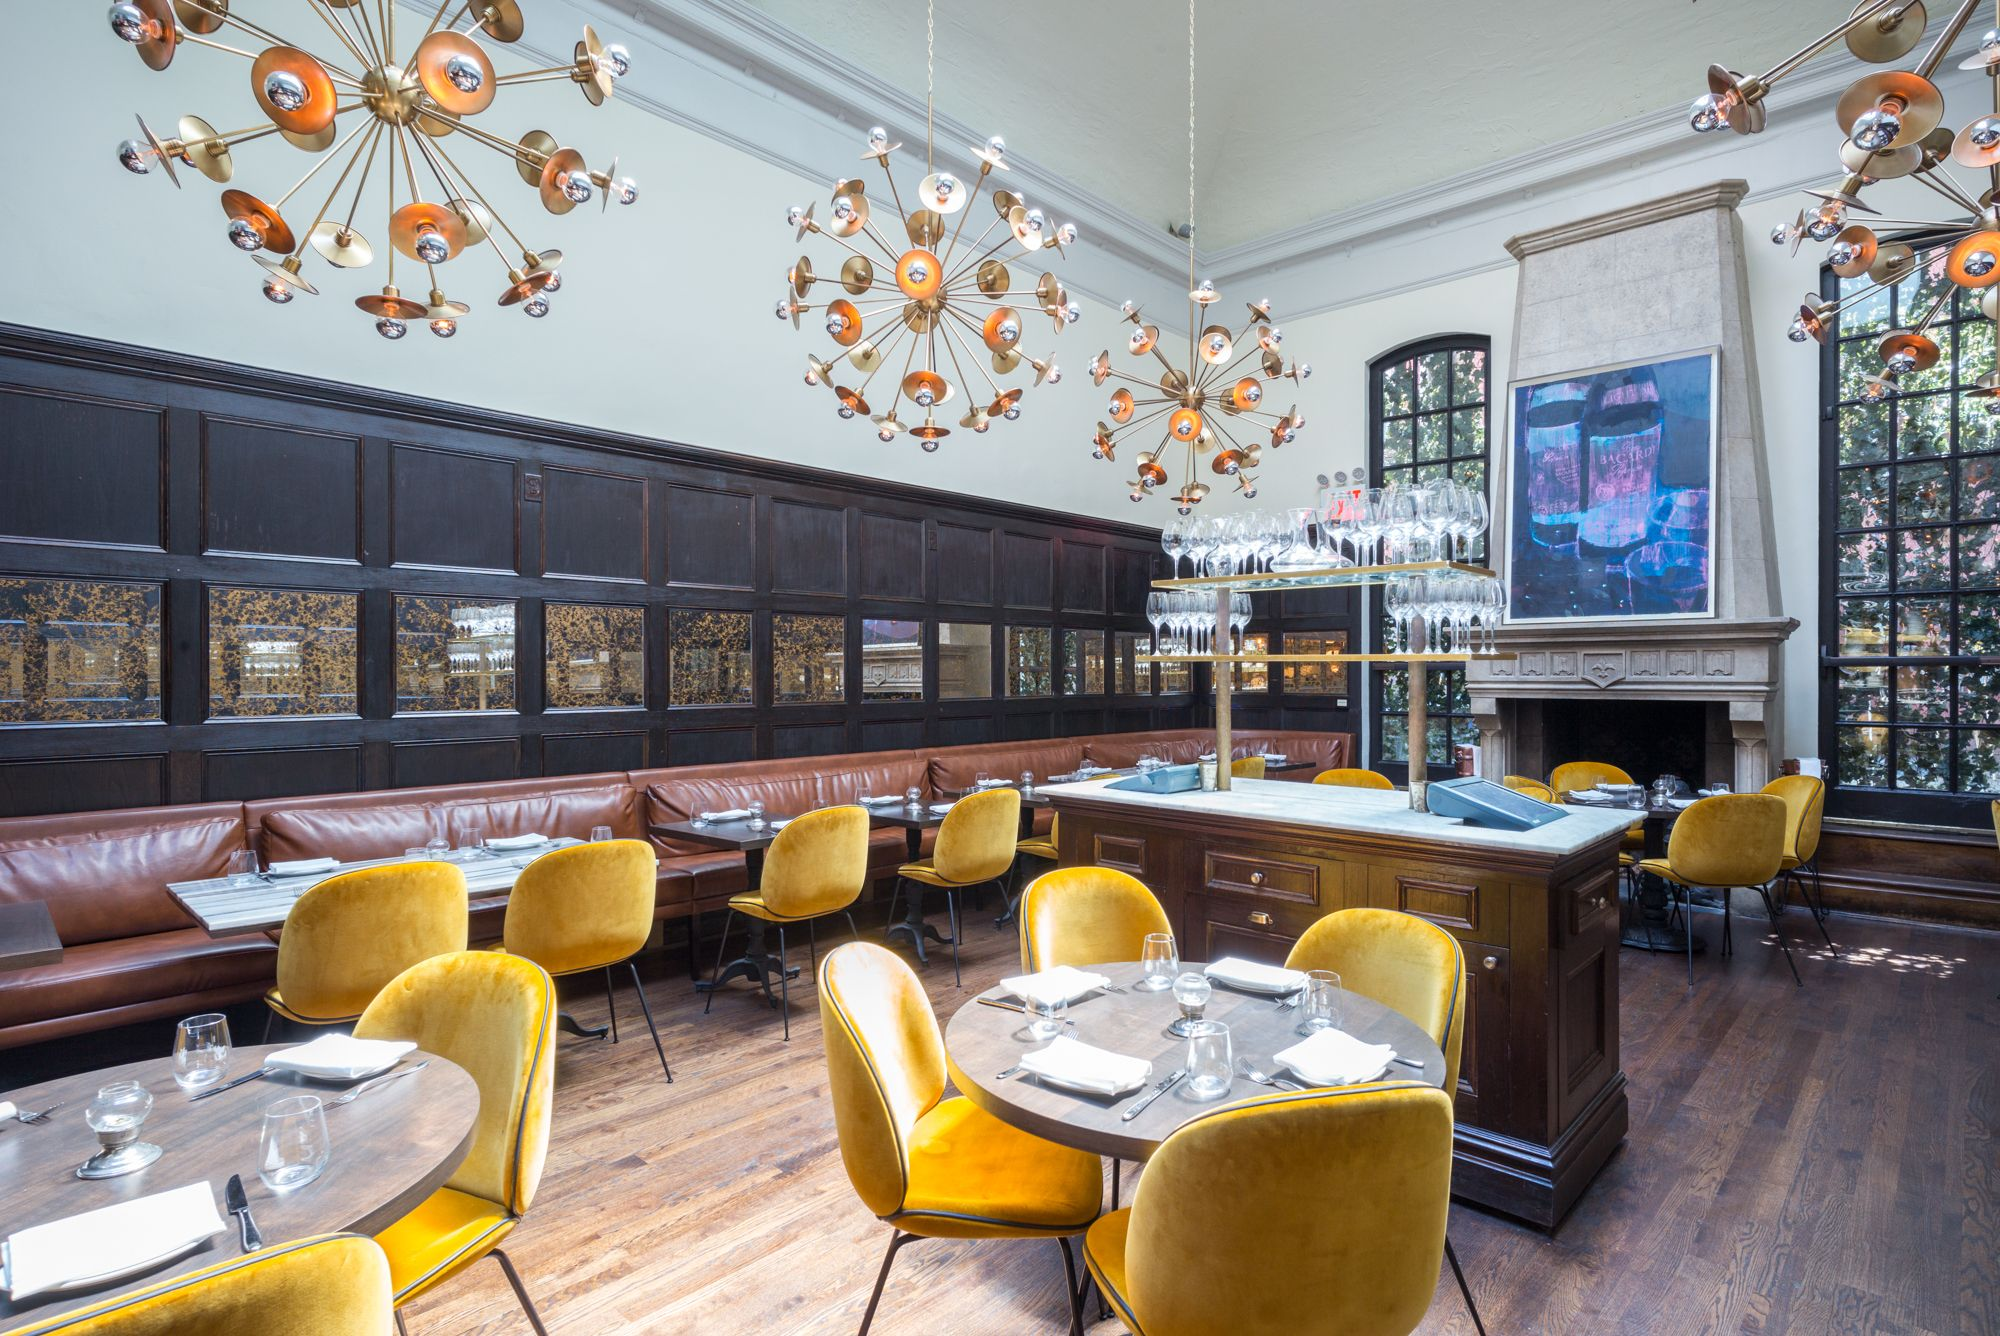 Take a Look Around Casa Apicii From Los Angeles Chef Casey Lane